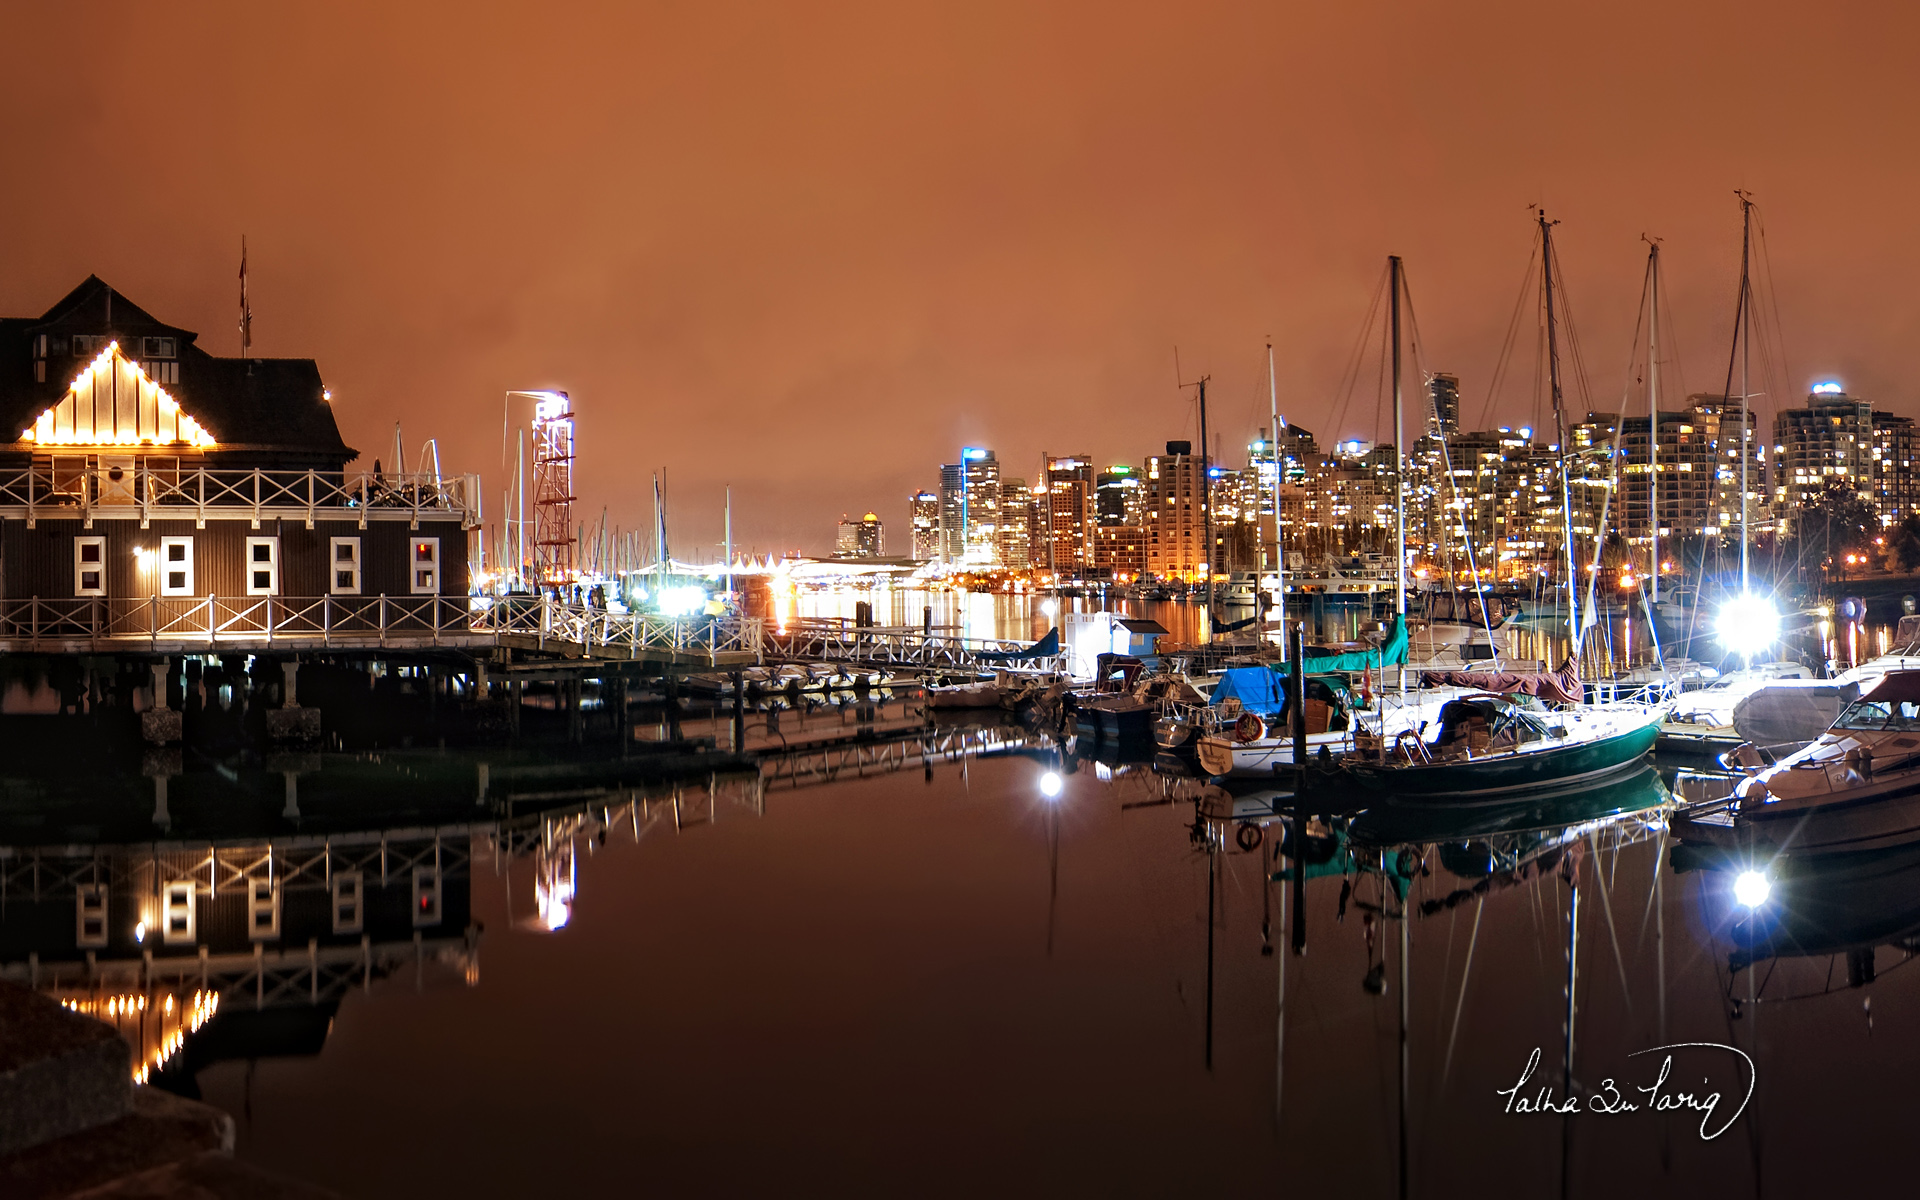 Vancouver Coal Harbour Nights 1126.57 Kb